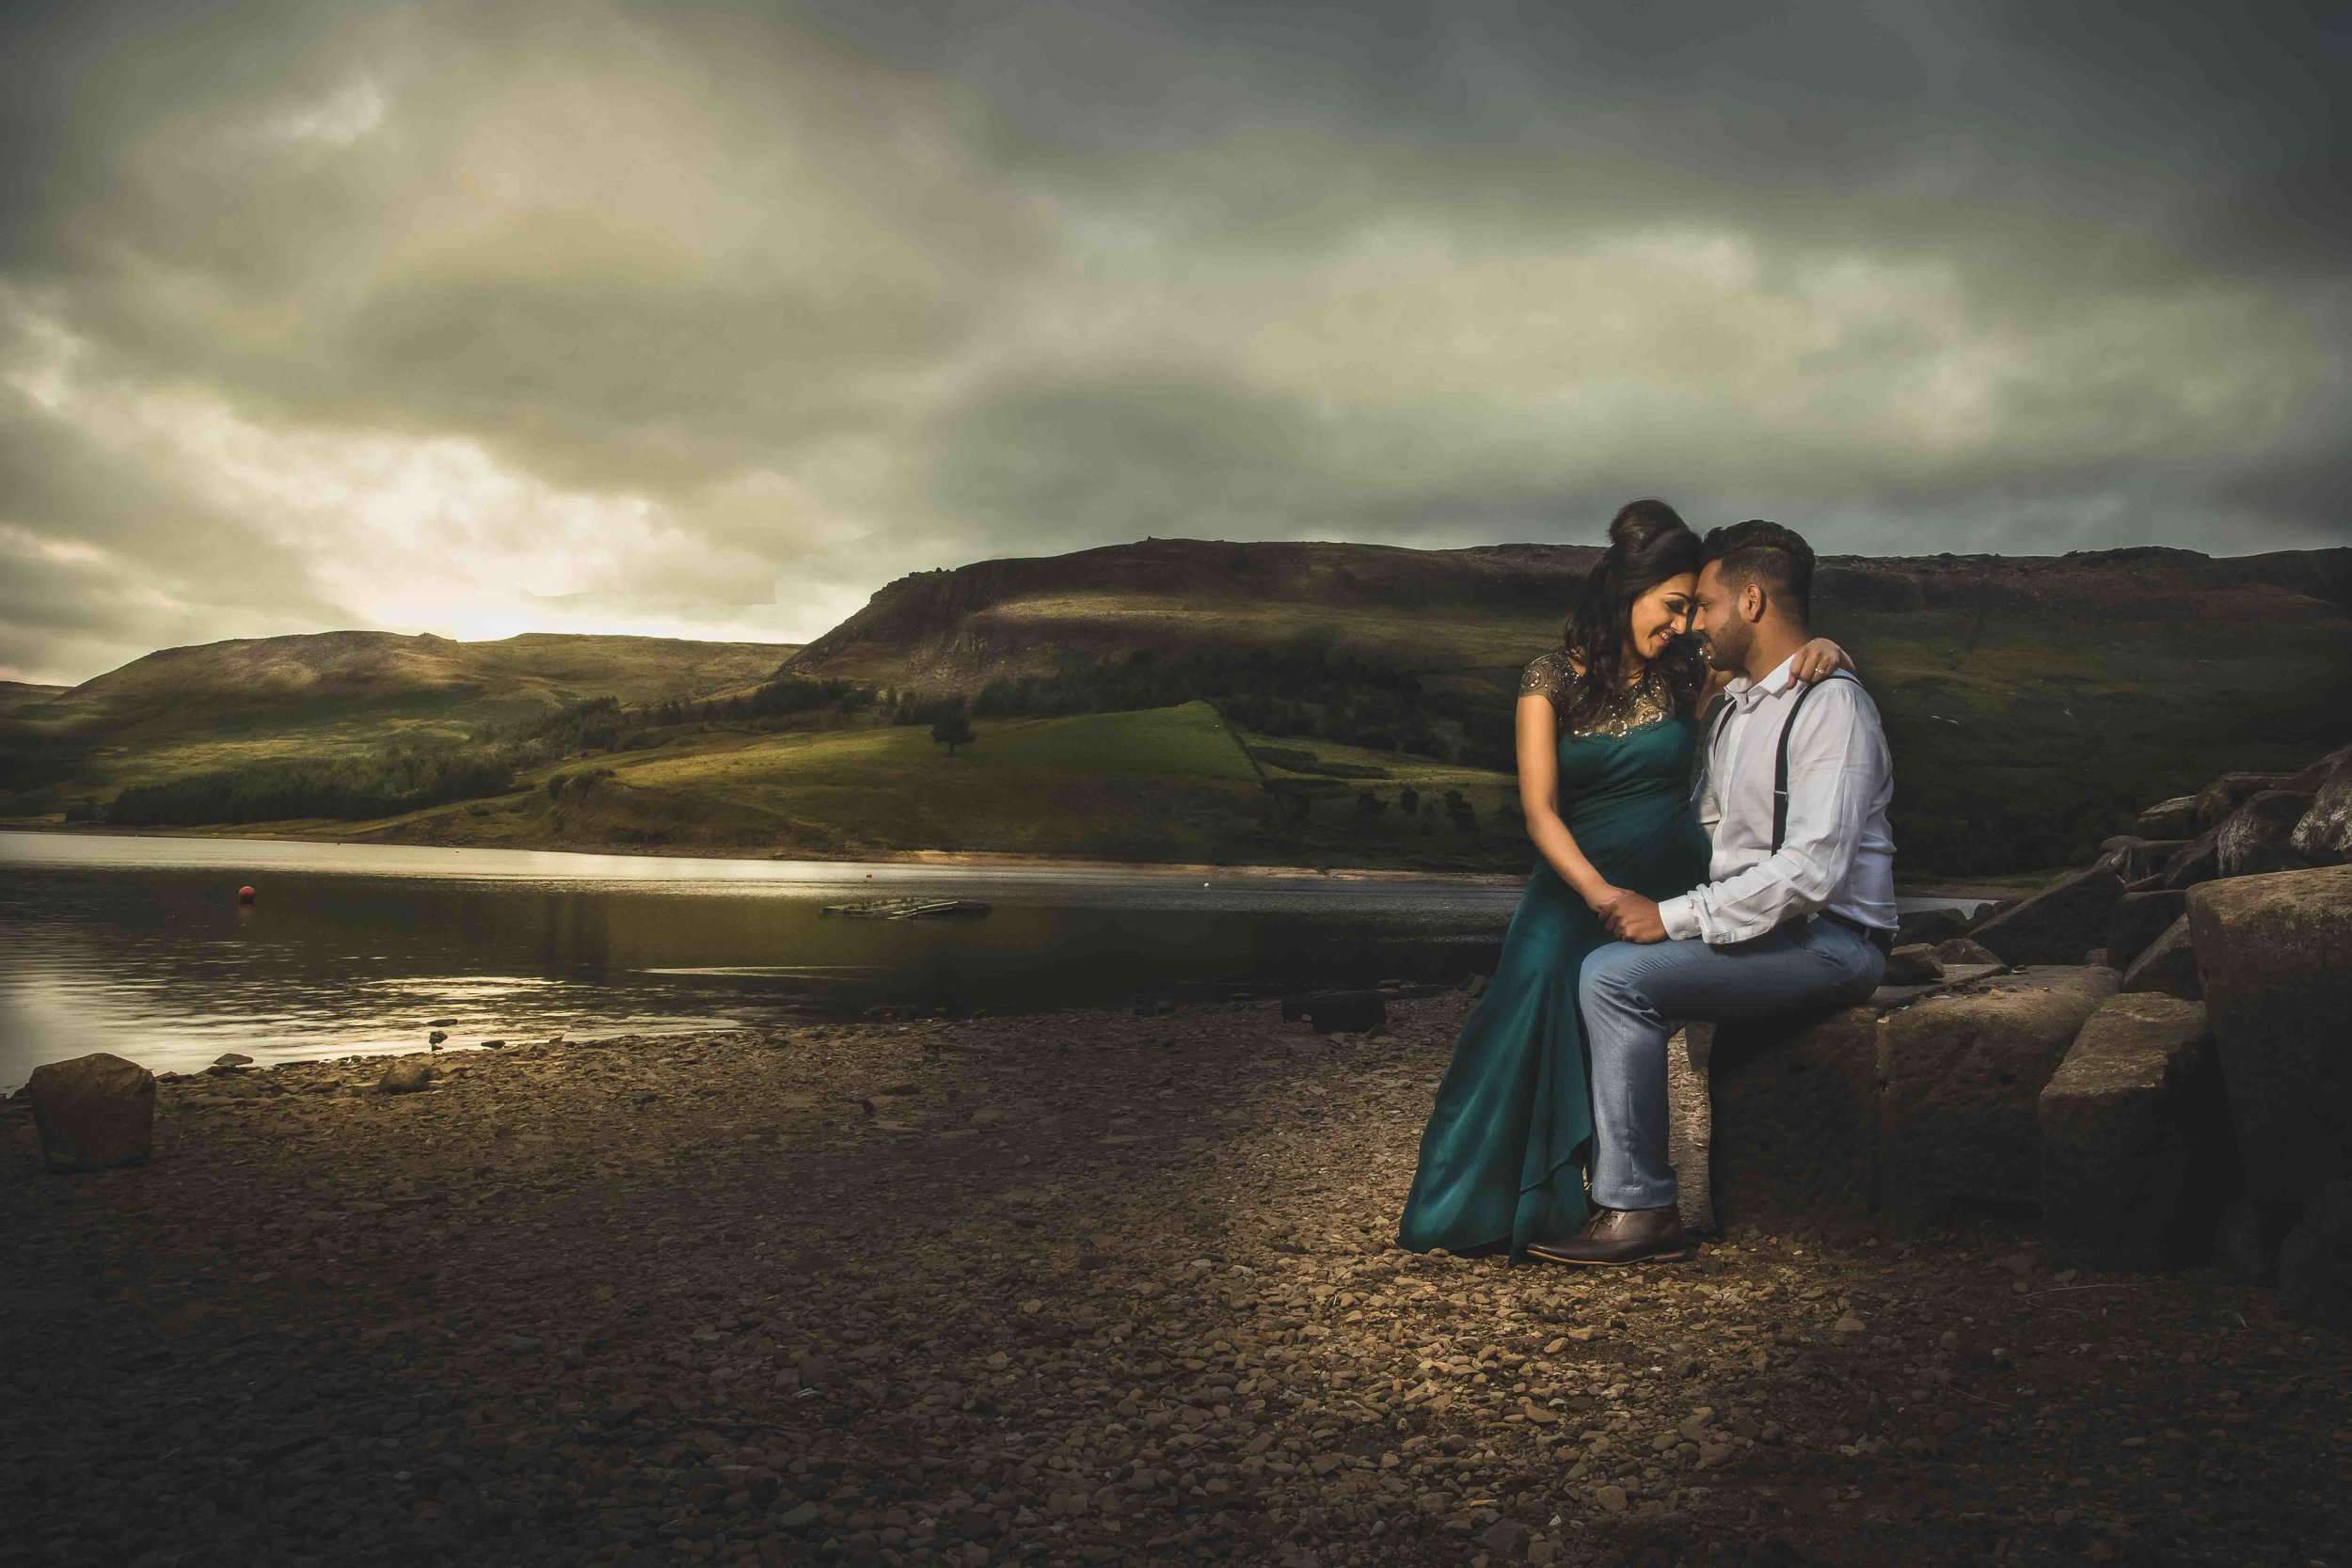 Asian Wedding Photographer Opu Sultan Photography Lyme Park Scotland Edinburgh Glasgow London Manchester Liverpool Birmingham Wedding Photos prewed shoot Emon & lazina Blog-23.jpg